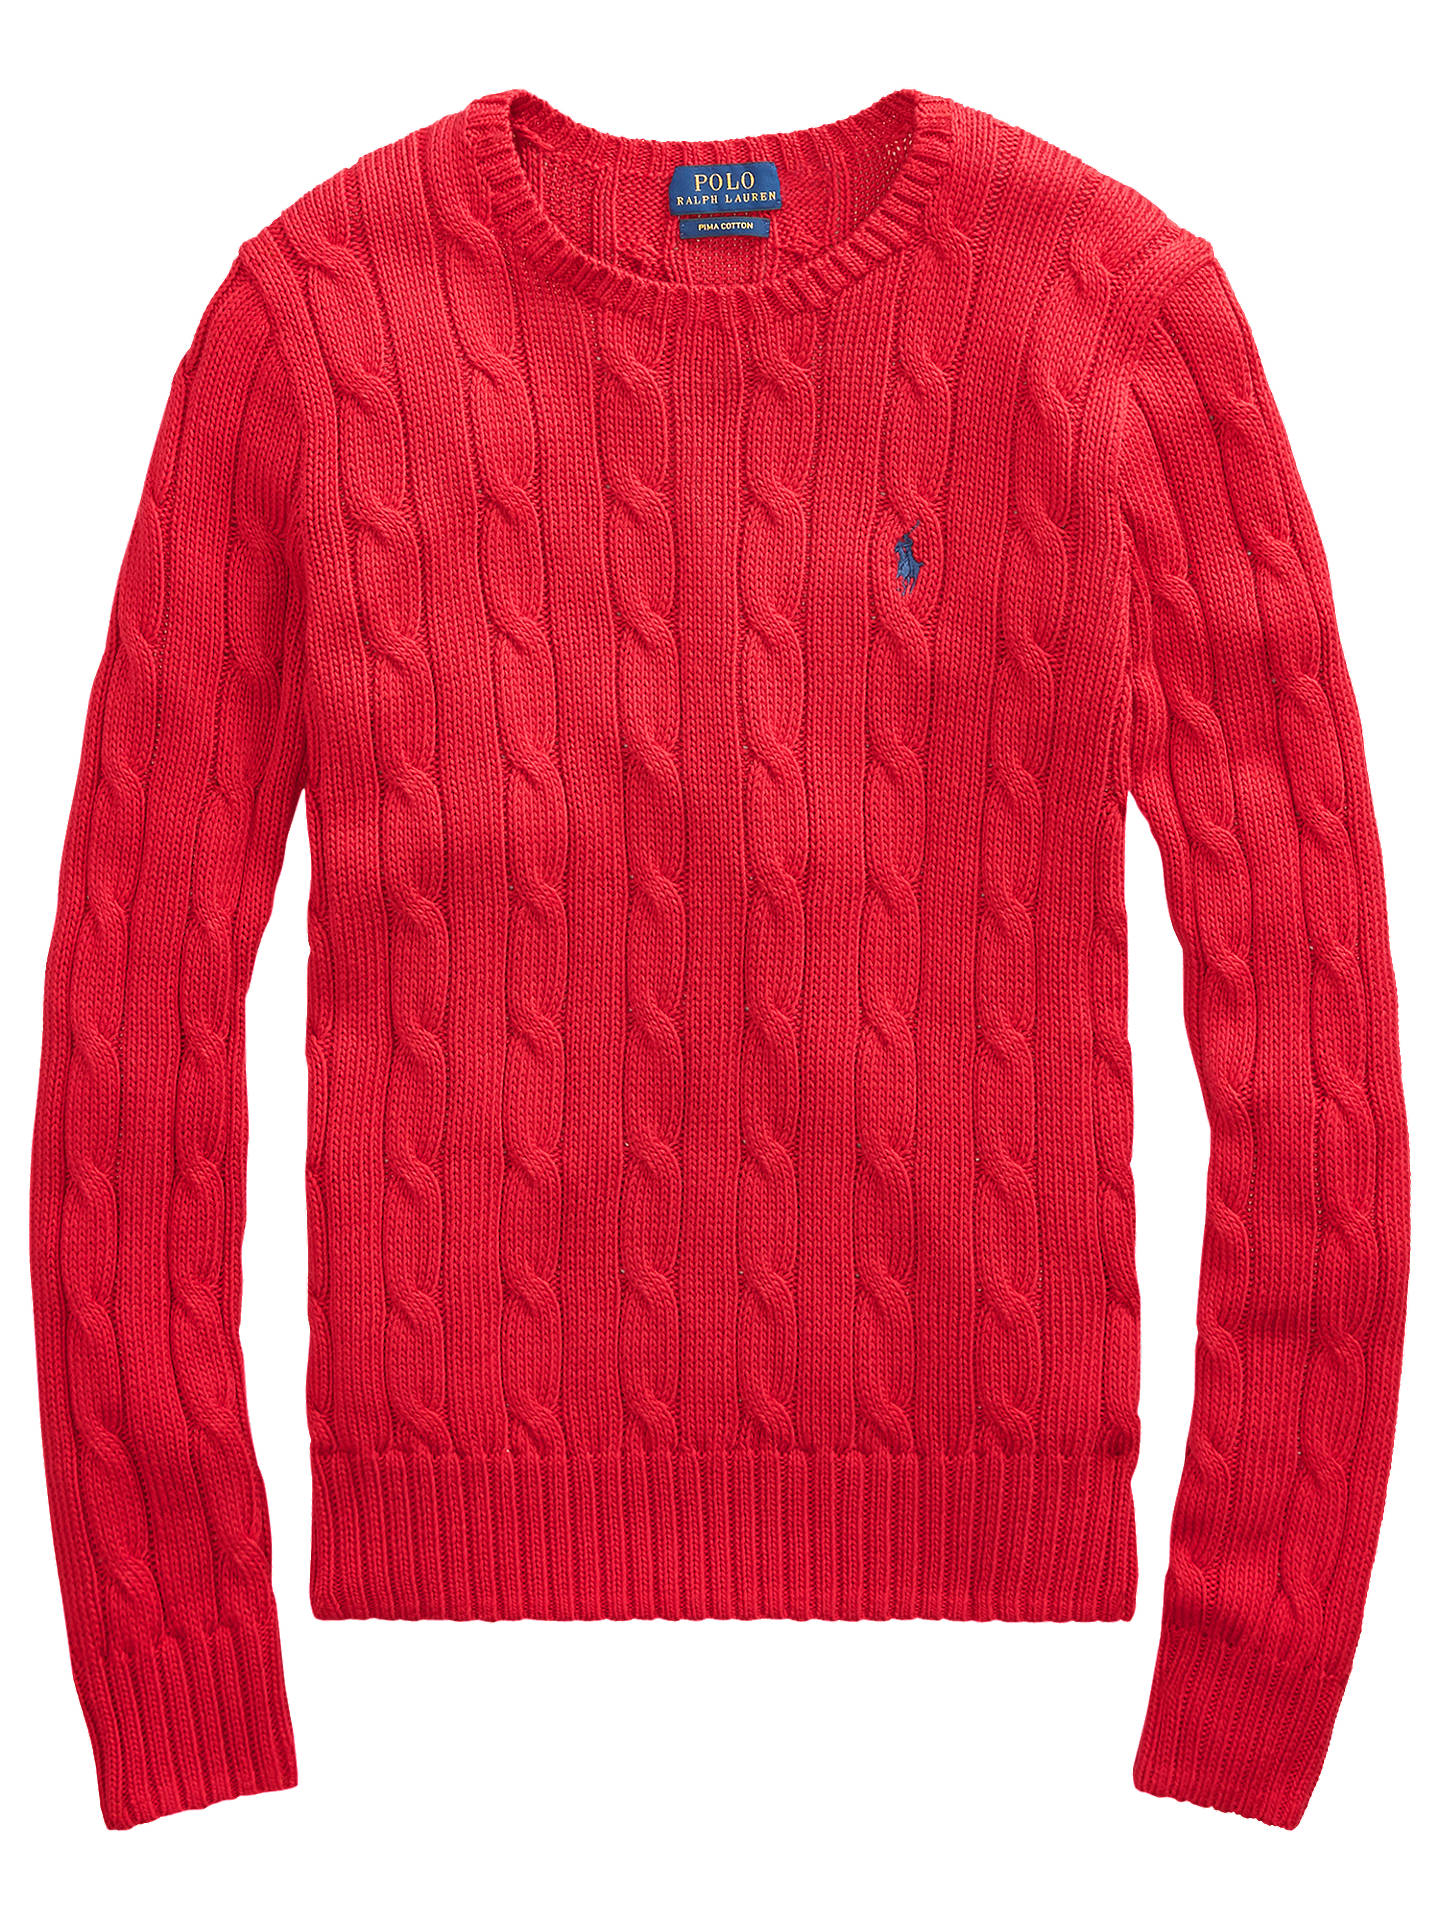 d2c70ad957dd Polo Ralph Lauren Julianna Cable Knit Cotton Jumper at John Lewis ...